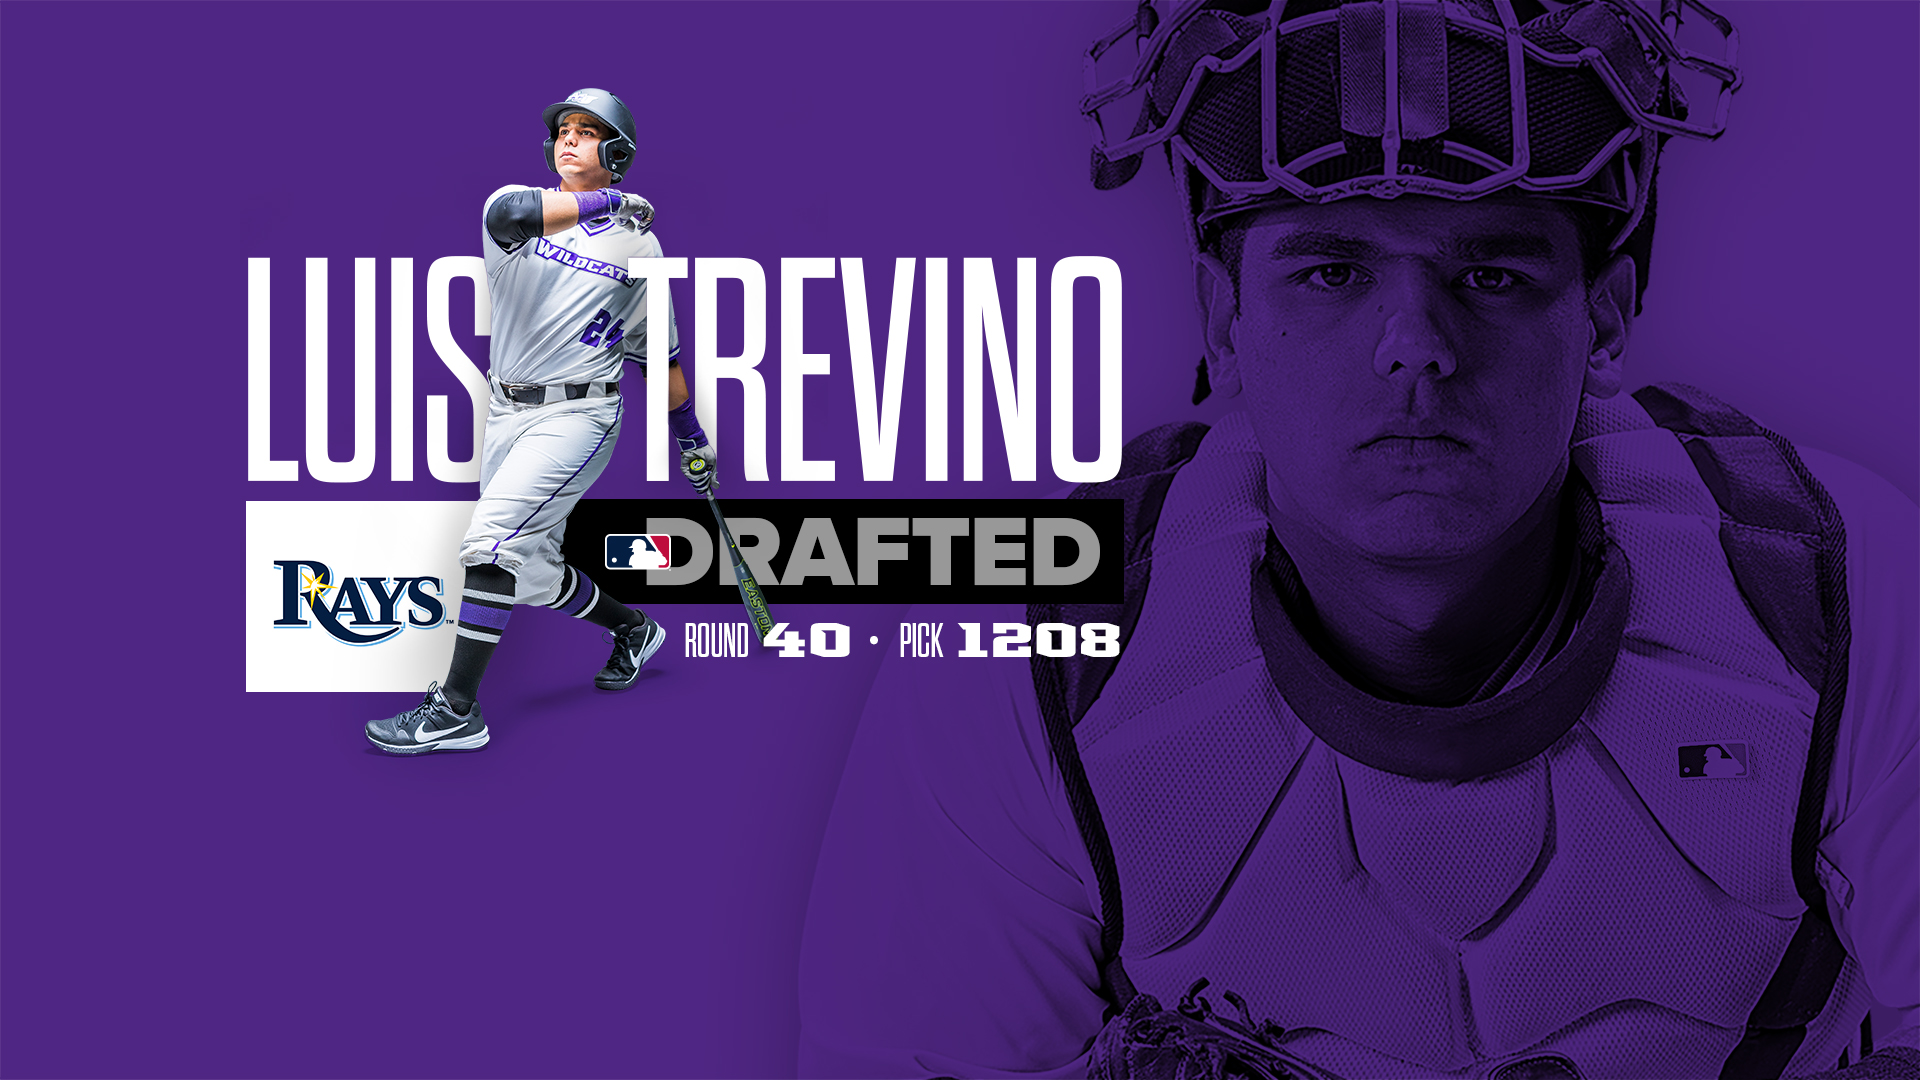 Catcher Luis Trevino Drafted By Tampa Bay Rays Abilene Christian